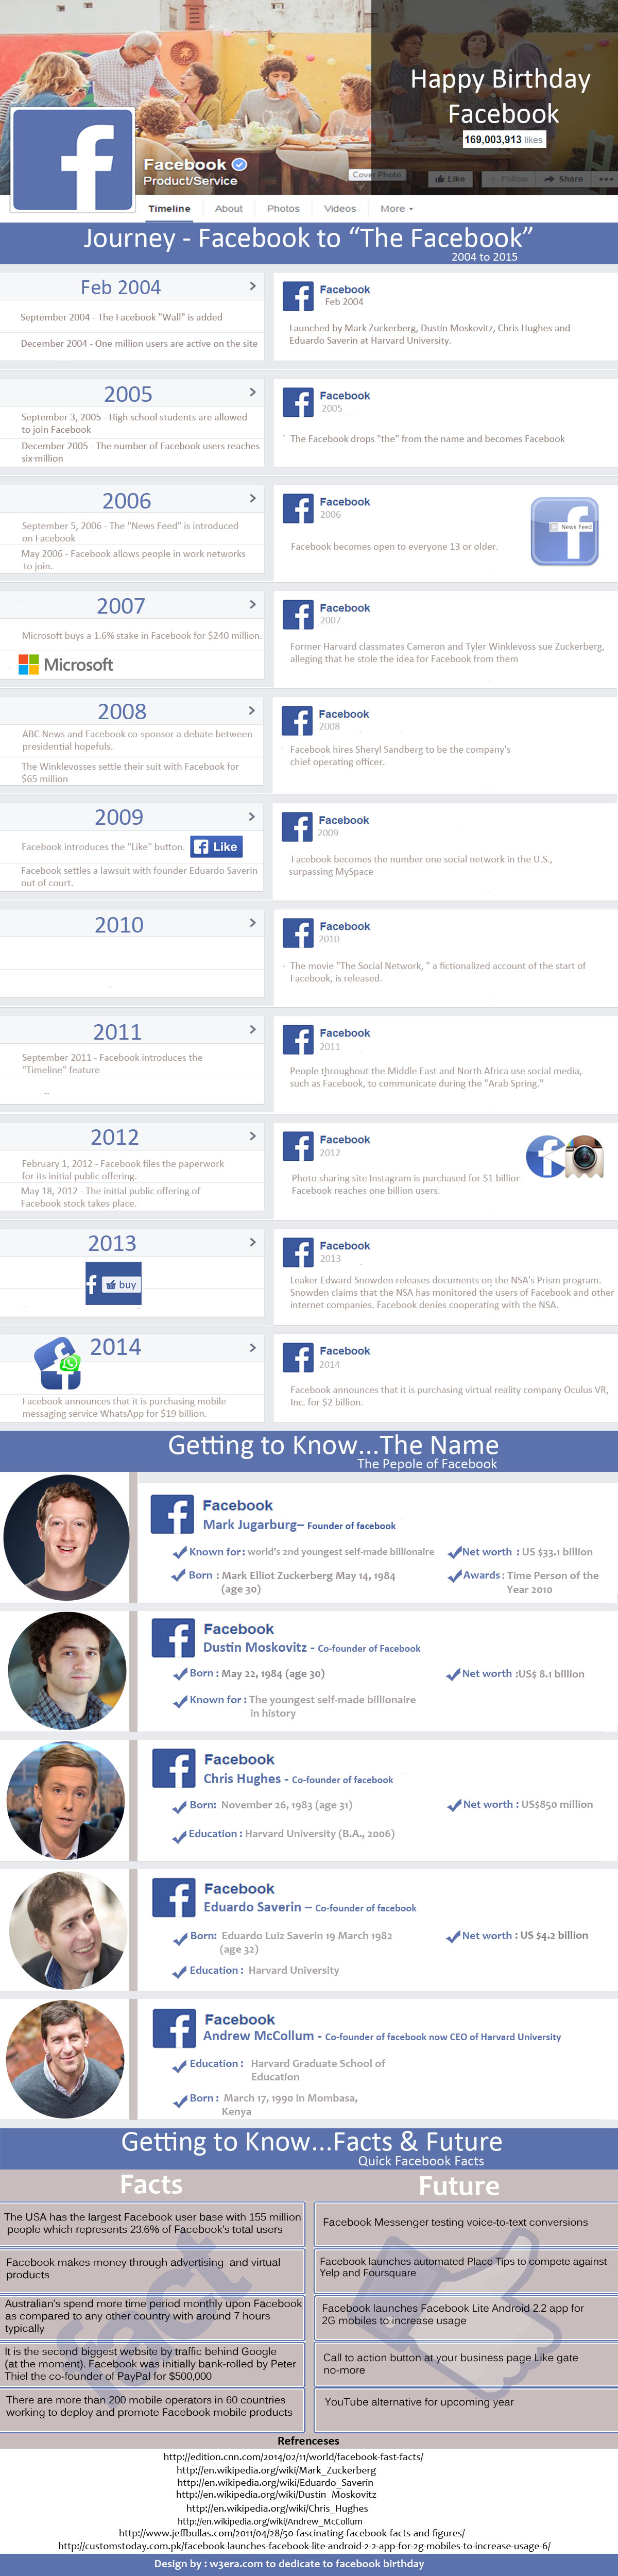 Happy-birthday-facebook-2015-infographic